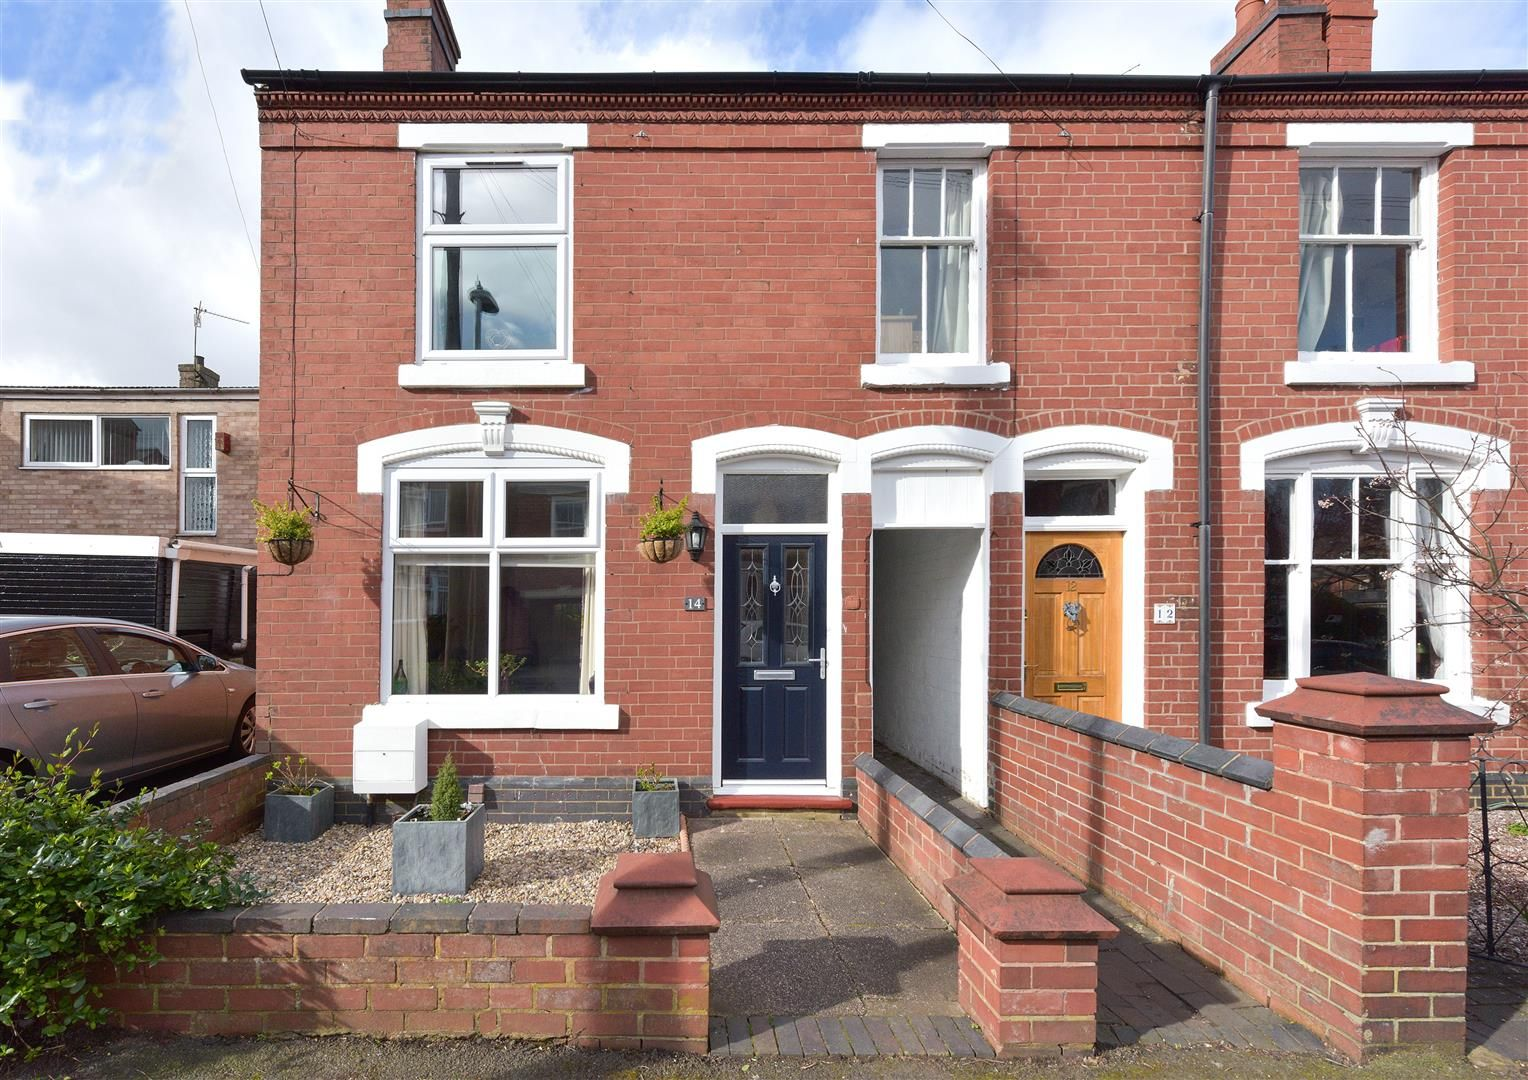 3 bed end-of-terrace for sale  - Property Image 20